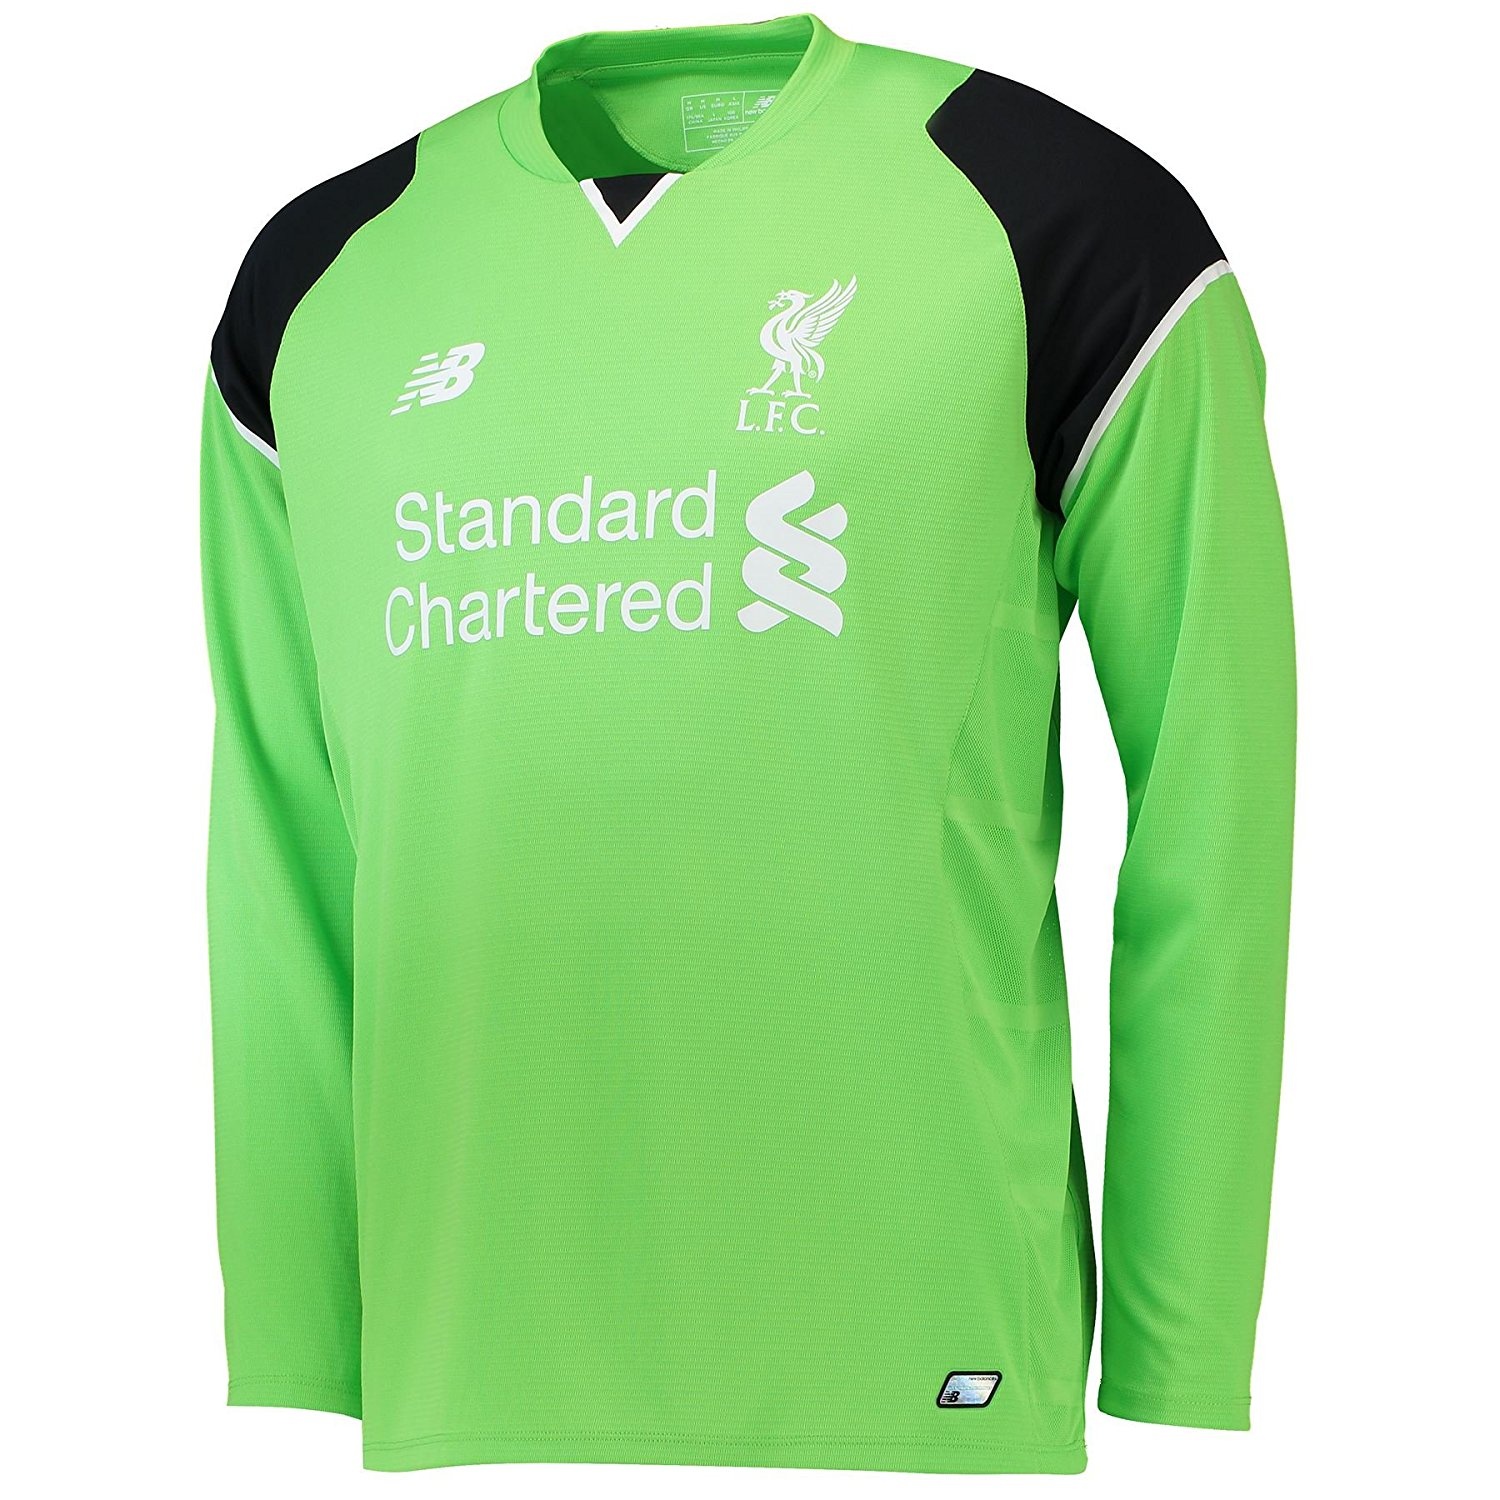 0f3a532c49c Get Quotations · New Balance Liverpool FC 2016/17 Long Sleeve Home  Goalkeeper Jersey - Adult - Green